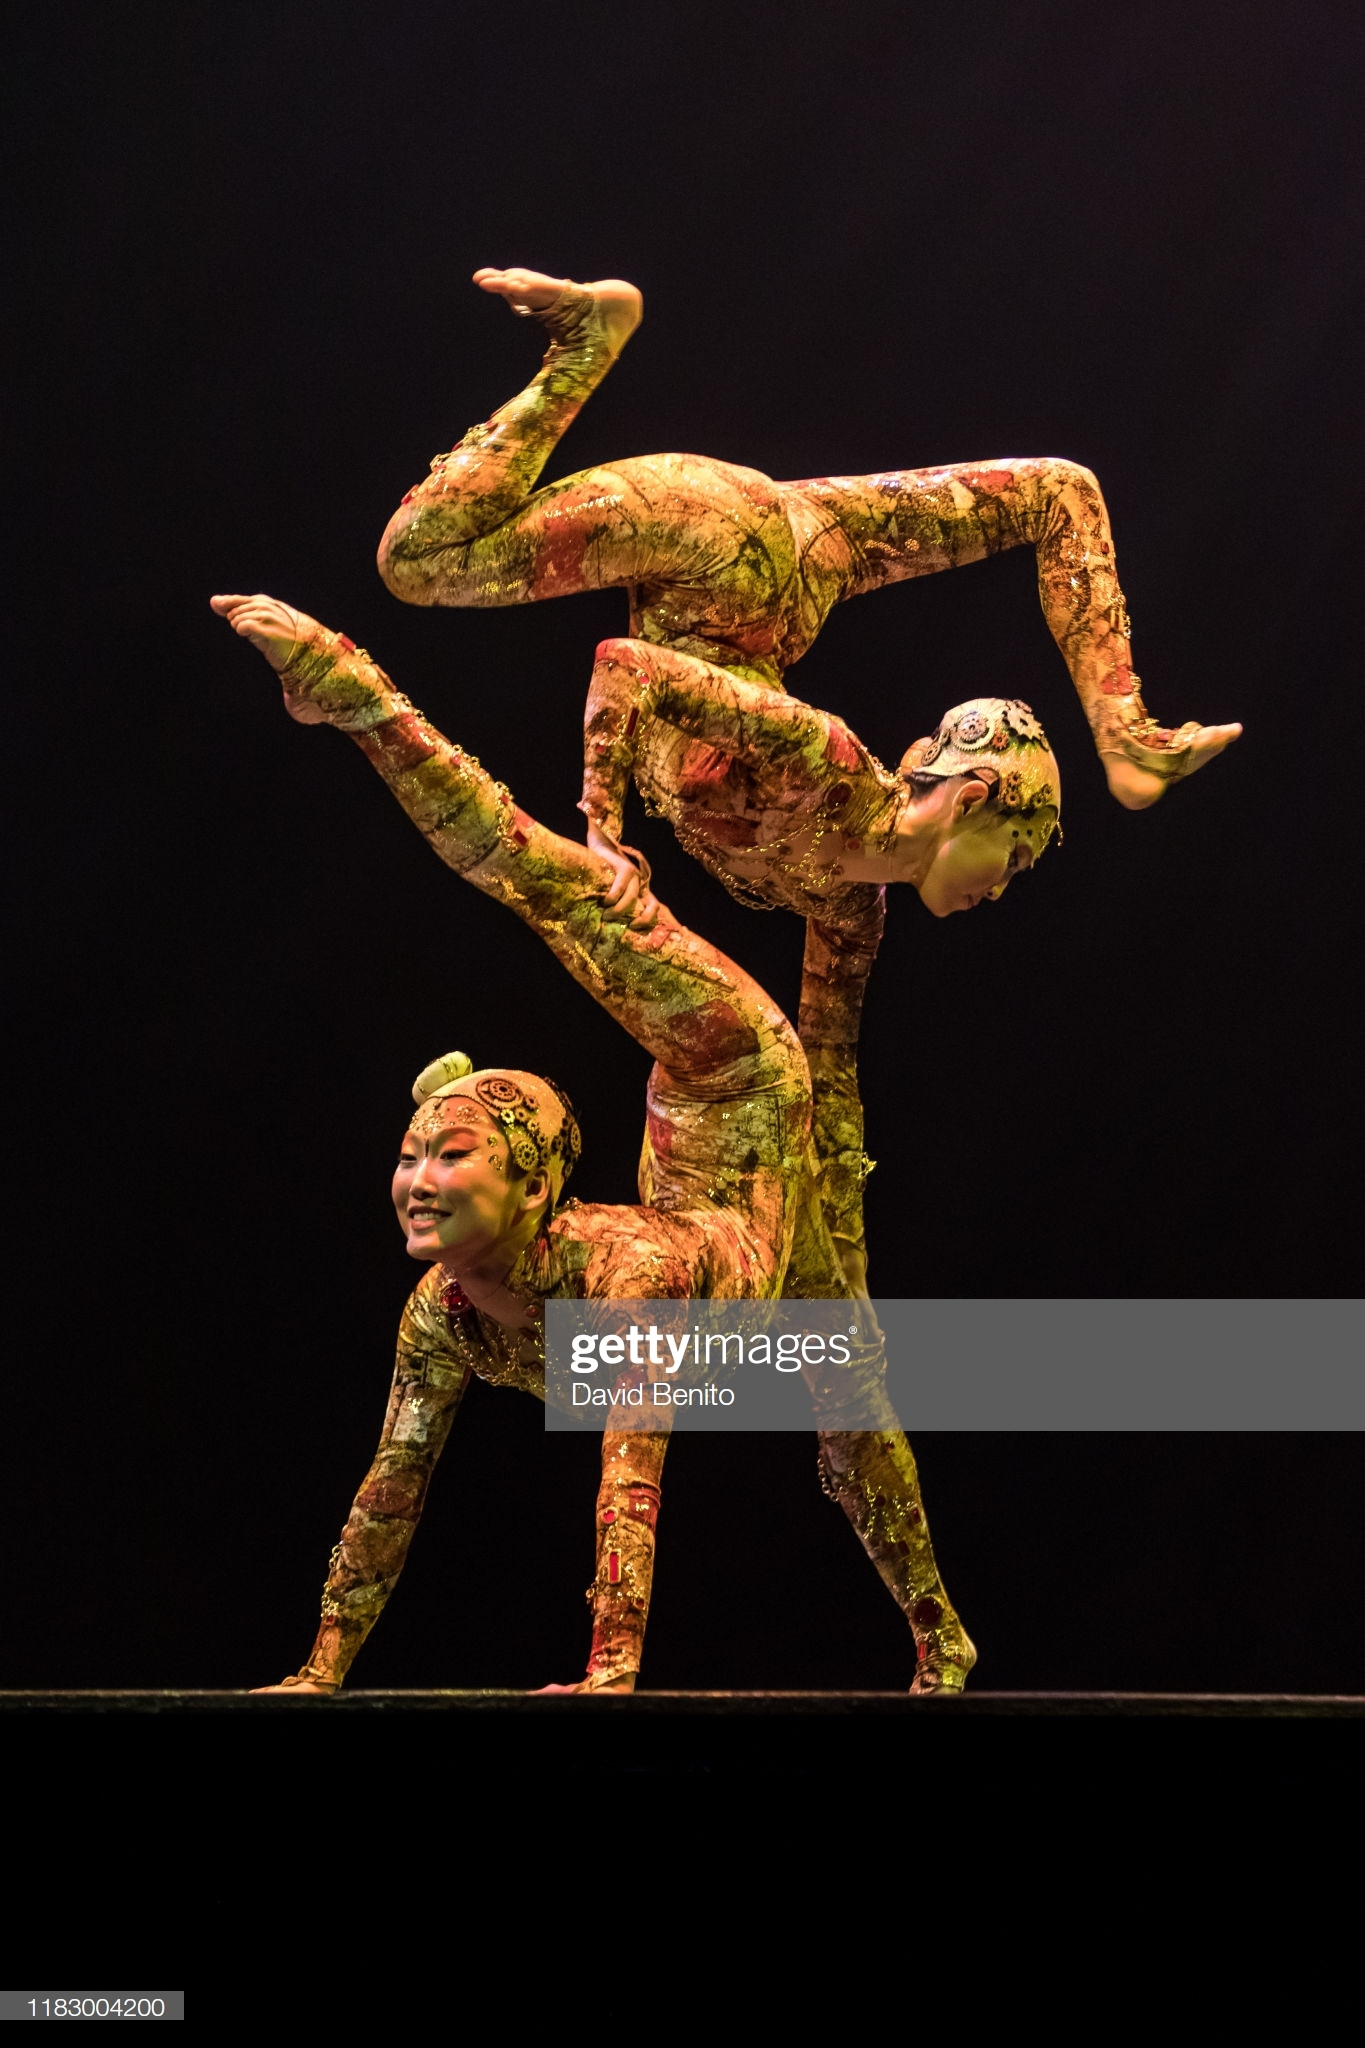 gettyimages-1183004200-2048x2048